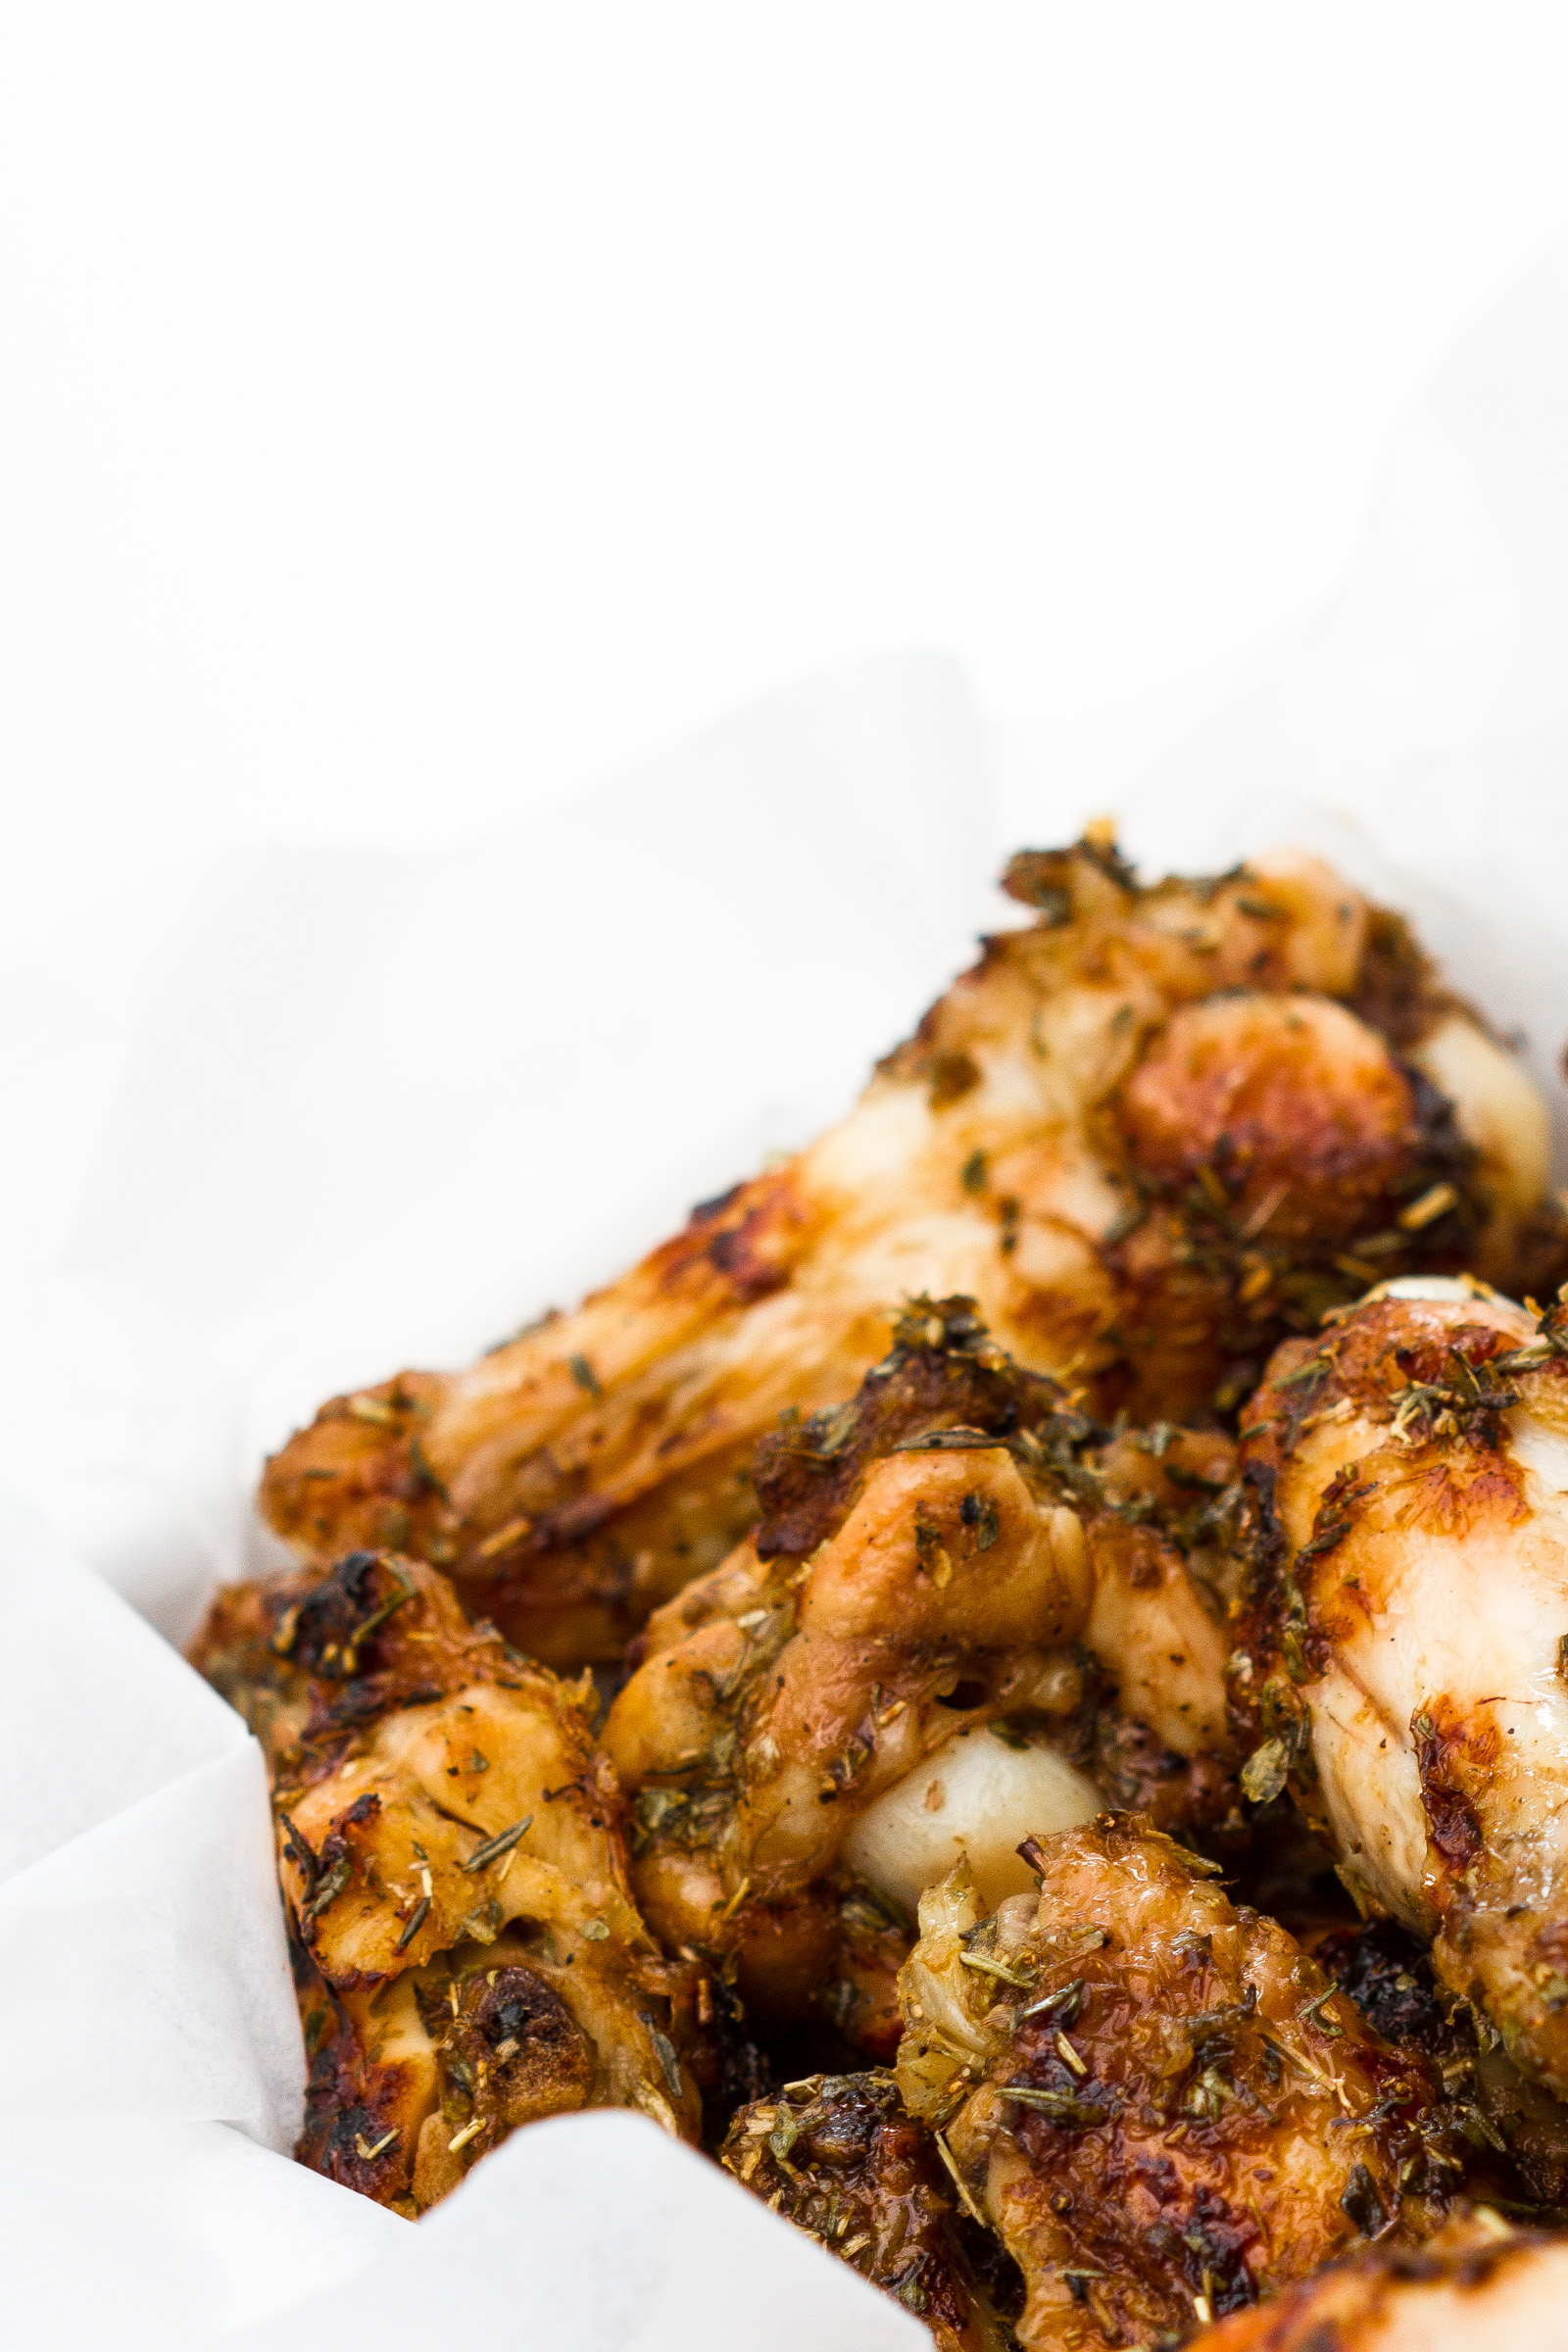 Chicken wings with honey and whiskey